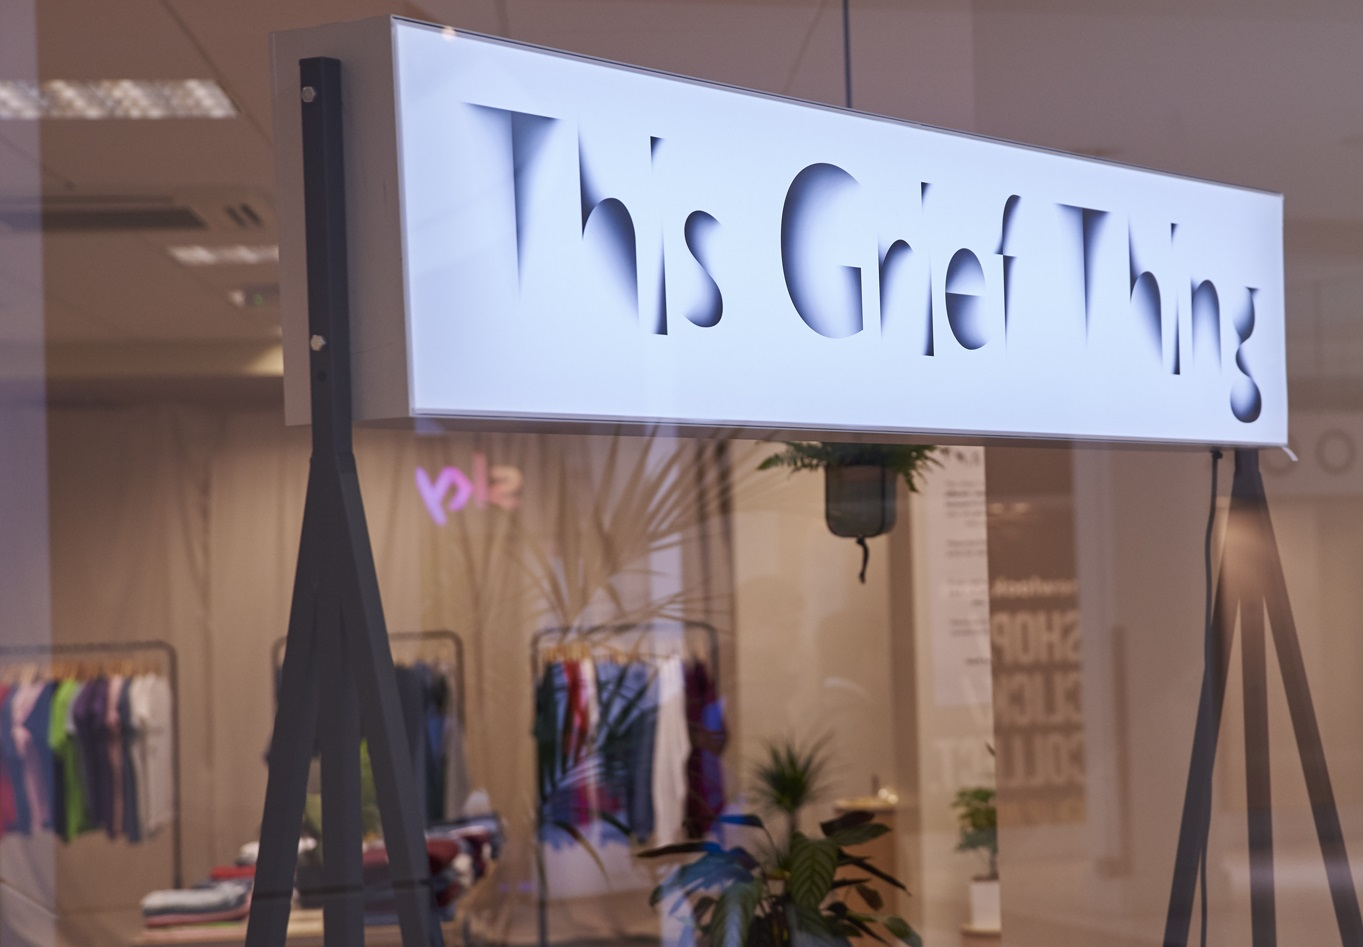 Themes of grief and death explored by Manchester arts festival